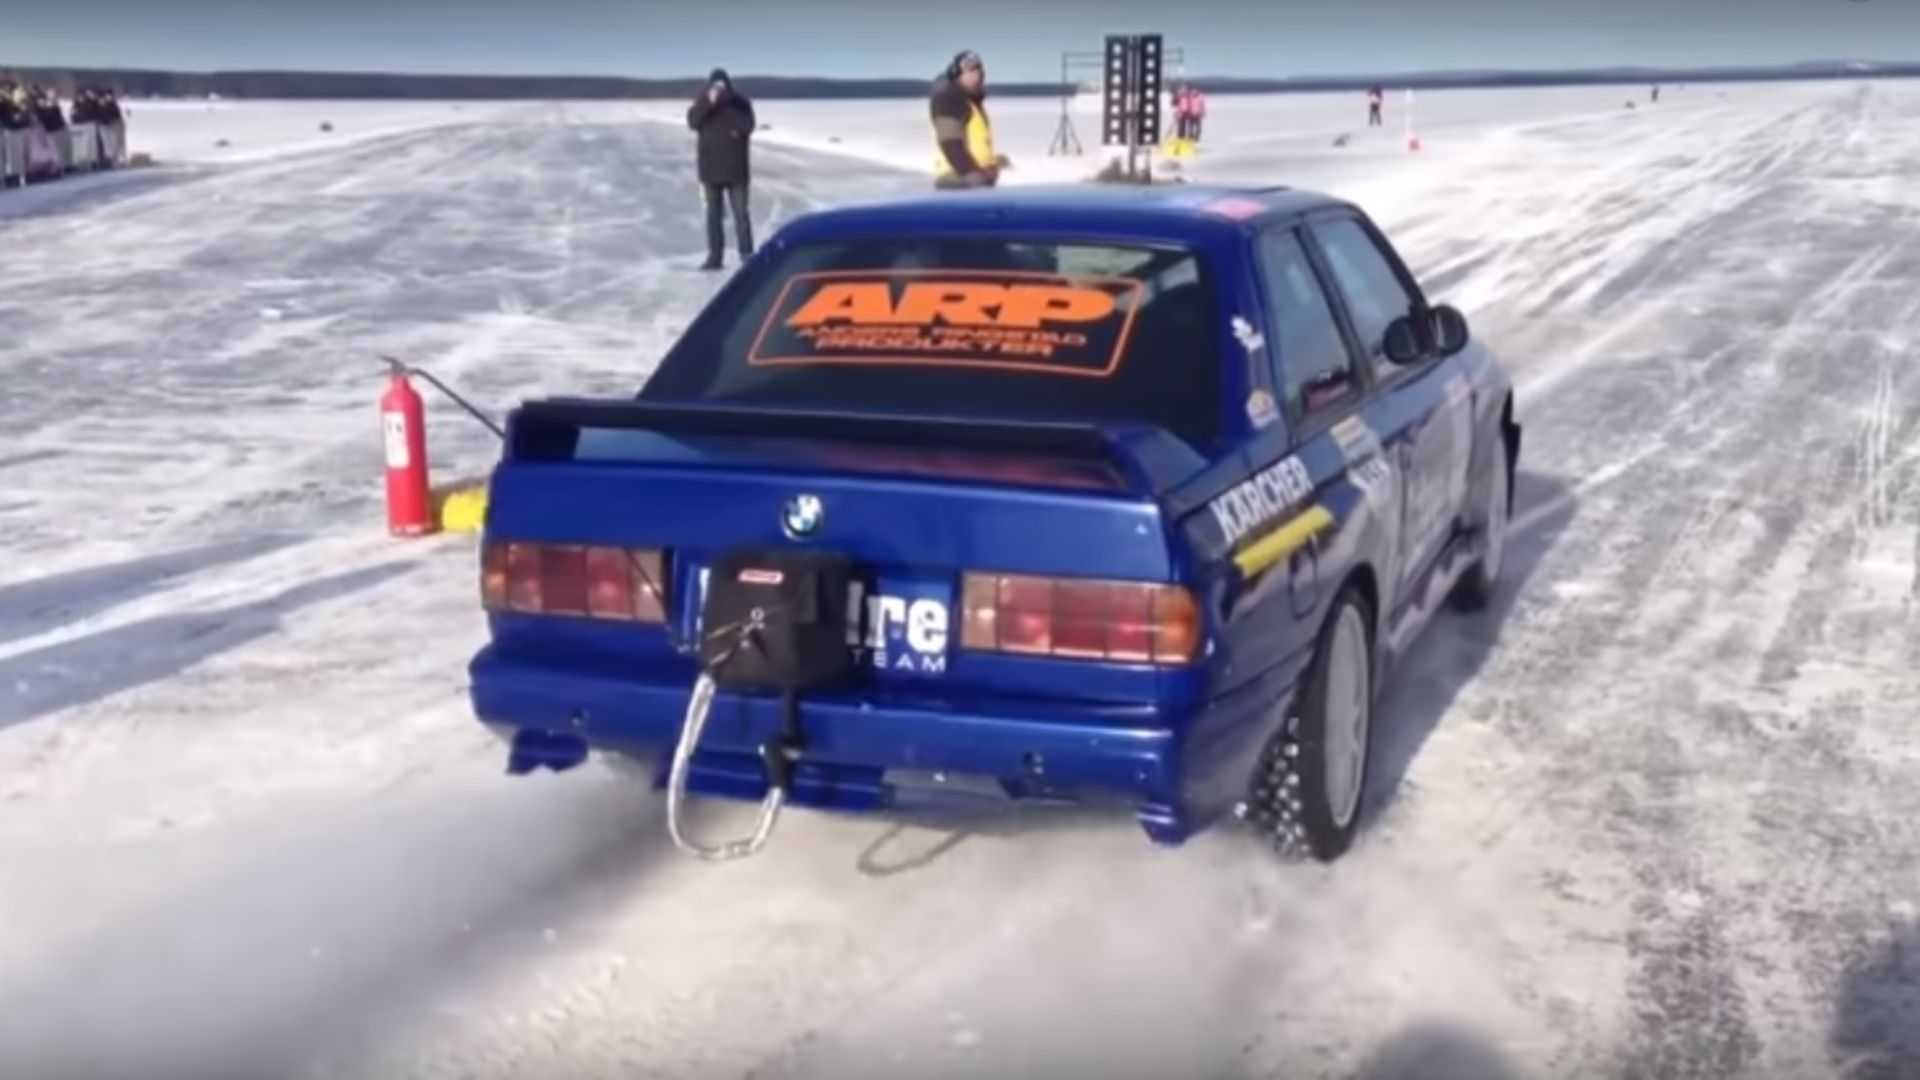 Bmw M3 E30 >> Bmw M3 E30 Becomes Fastest Car On Ice After Hitting 215 5 Mph